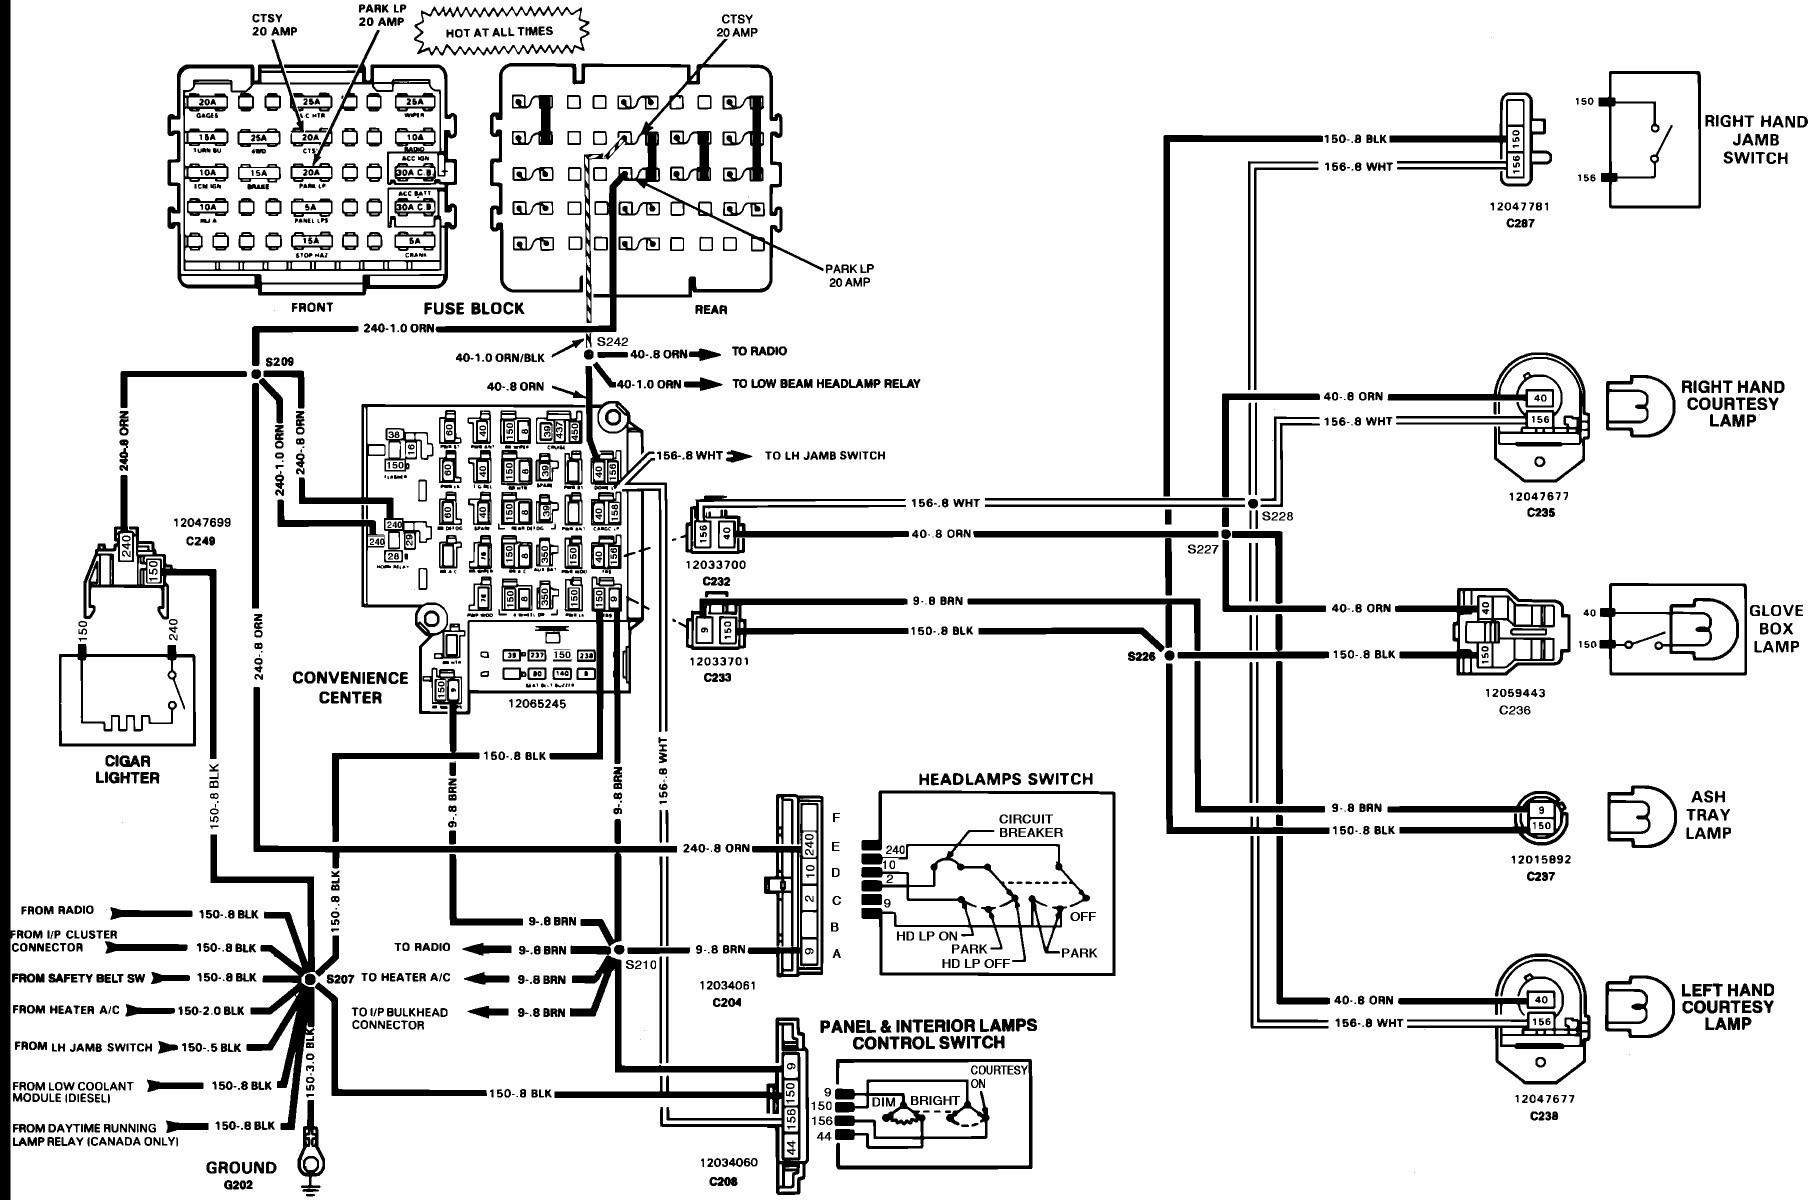 110v Schematic Wiring Wiring Schematic Diagram 140 82 46 116